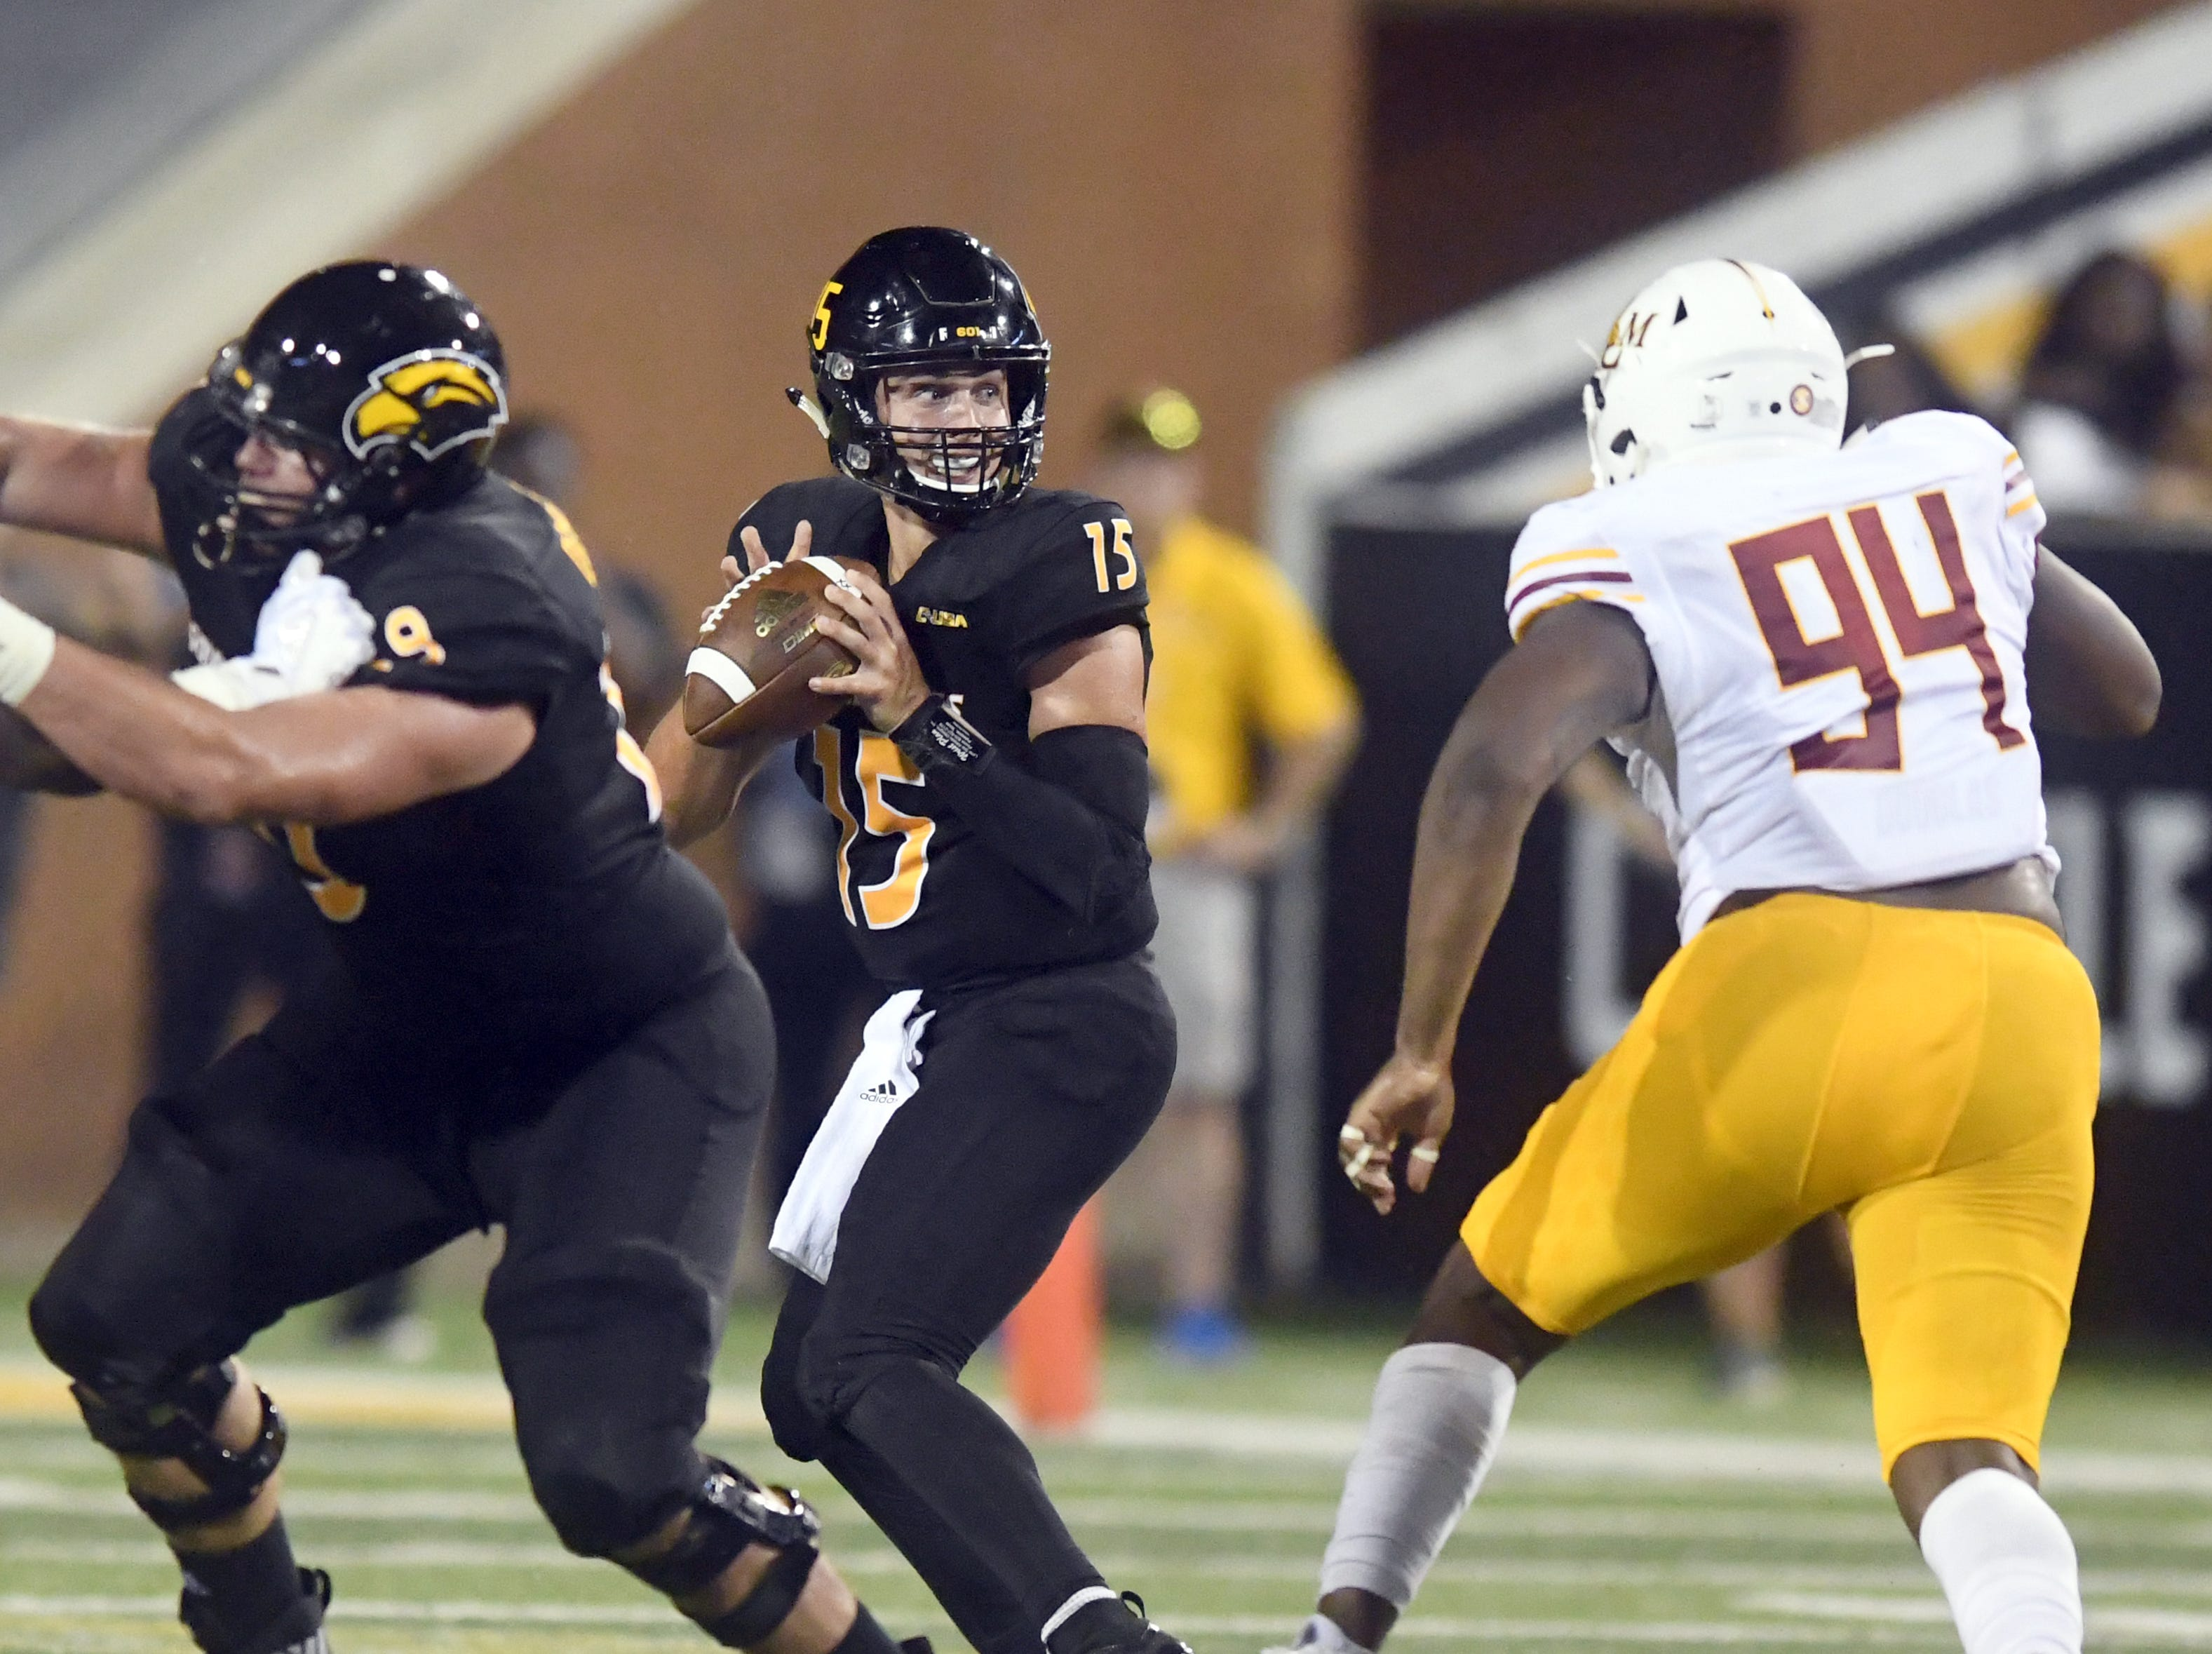 Southern Miss quarterback Jack Abraham looks for a receiver in a game against ULM in M.M. Roberts Stadium on Saturday, September 8, 2018.